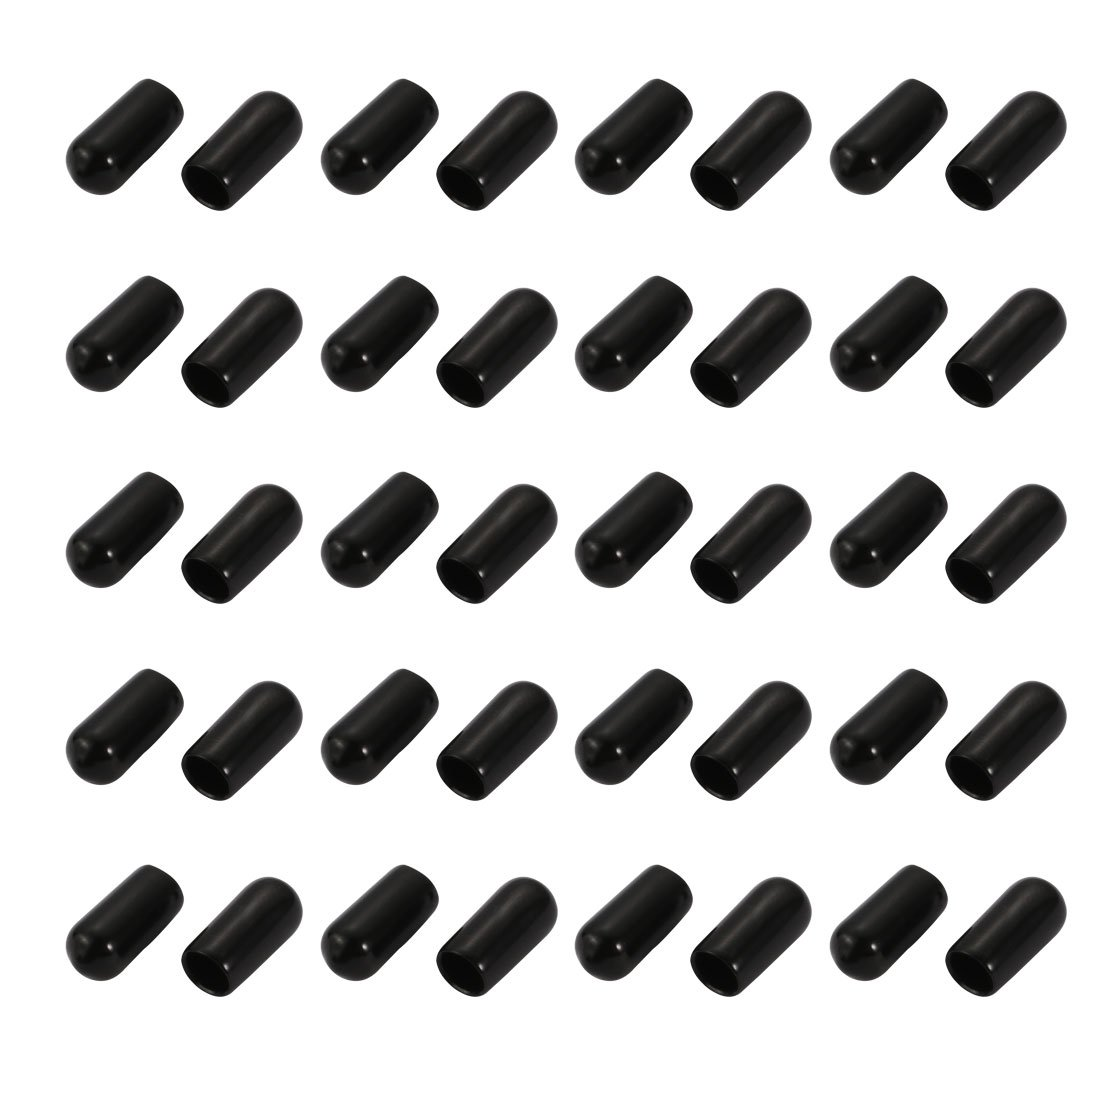 8mm ID Round End Cap Cover Flexible Black Tube Caps 50pcs sourcing map Screw Thread Protector